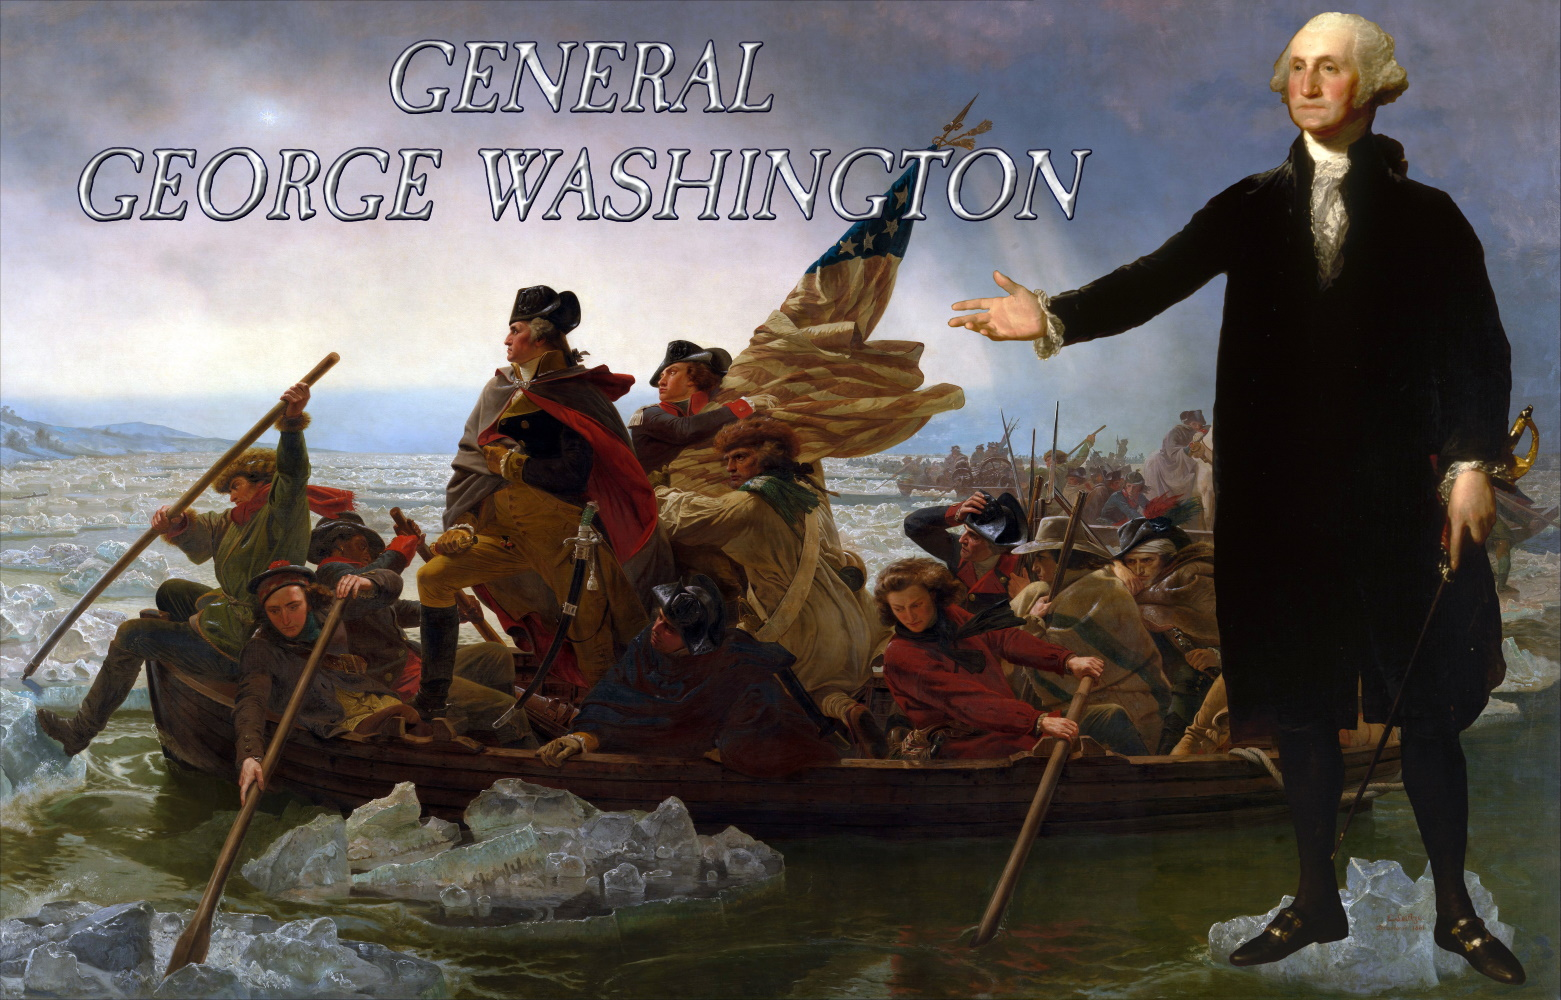 general george washington BANNER 5e.jpg